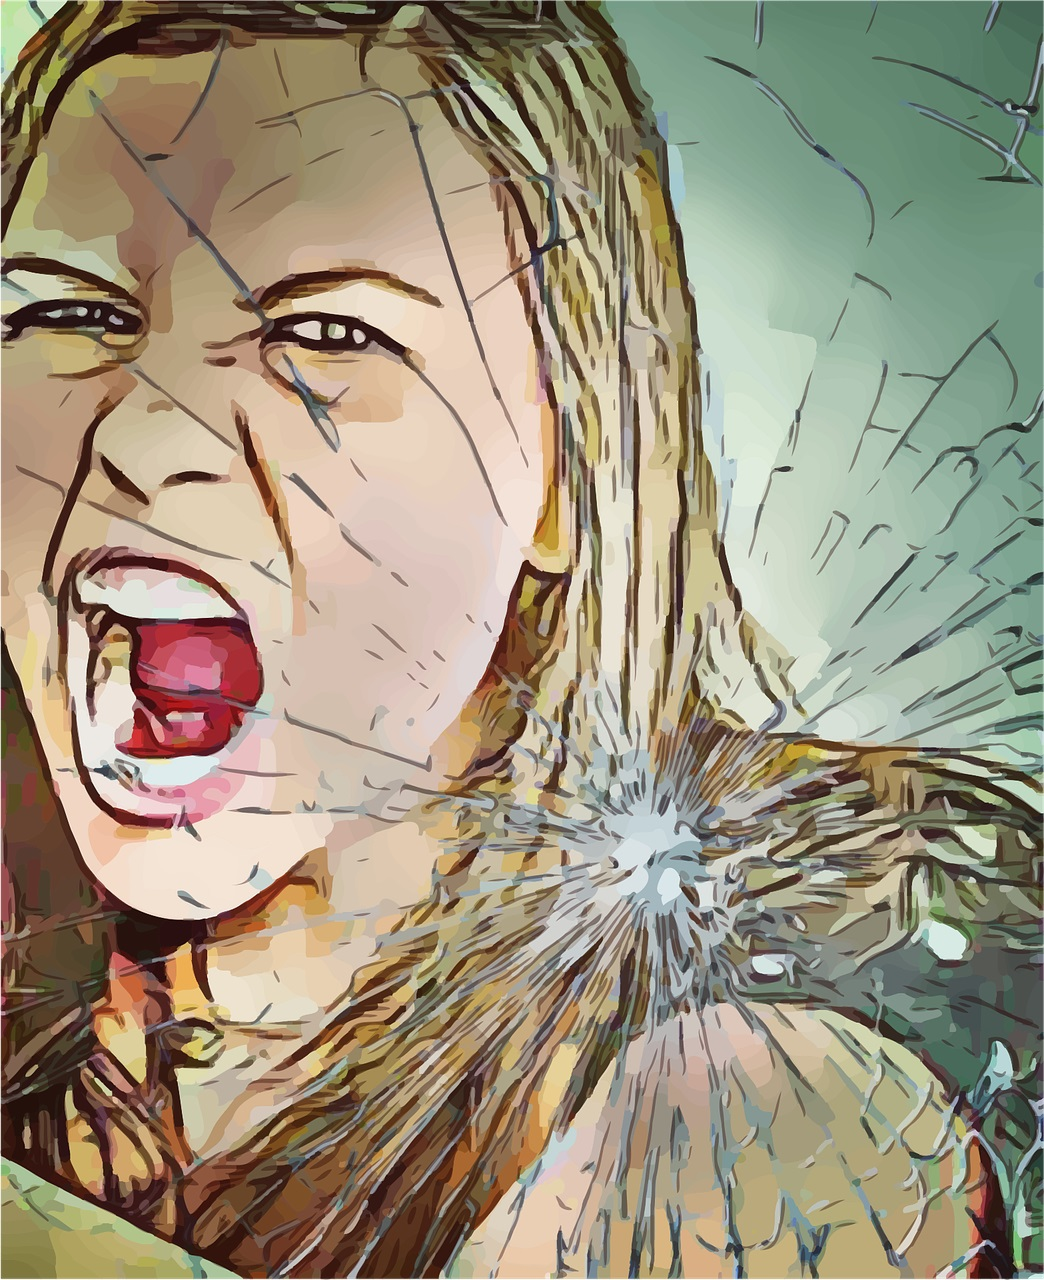 A picture edit of a blonde woman yelling is overlaid with a broken glass